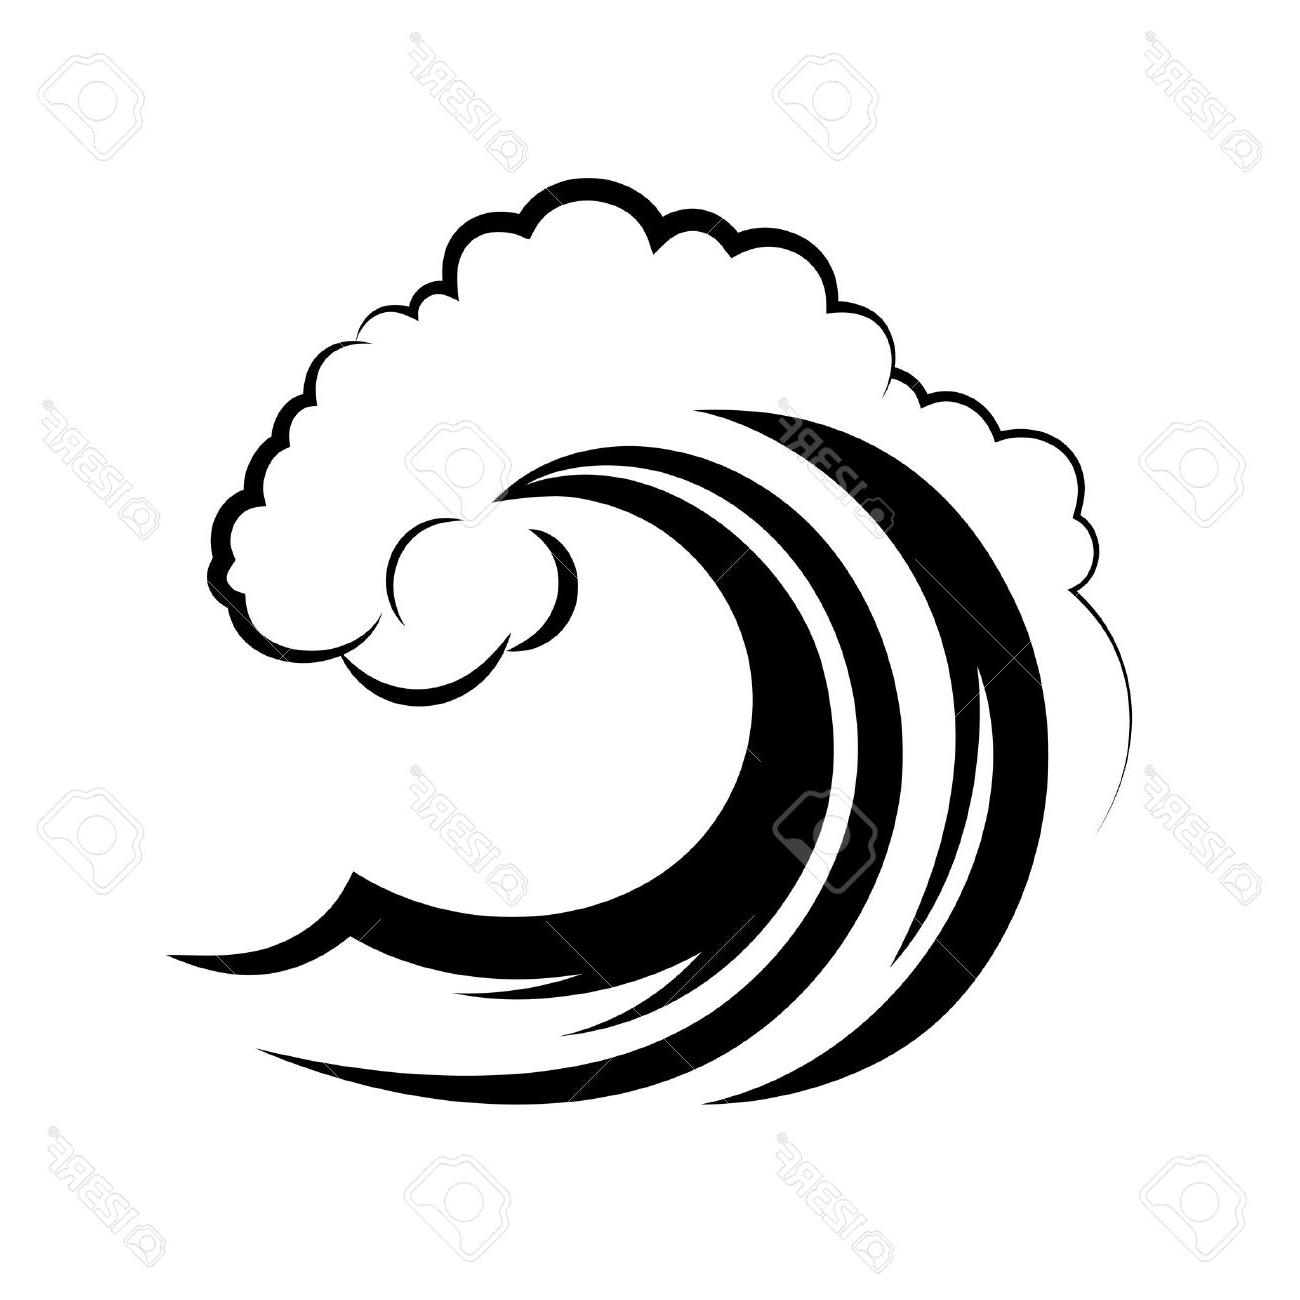 Waves clipart black and white. Wave free download best